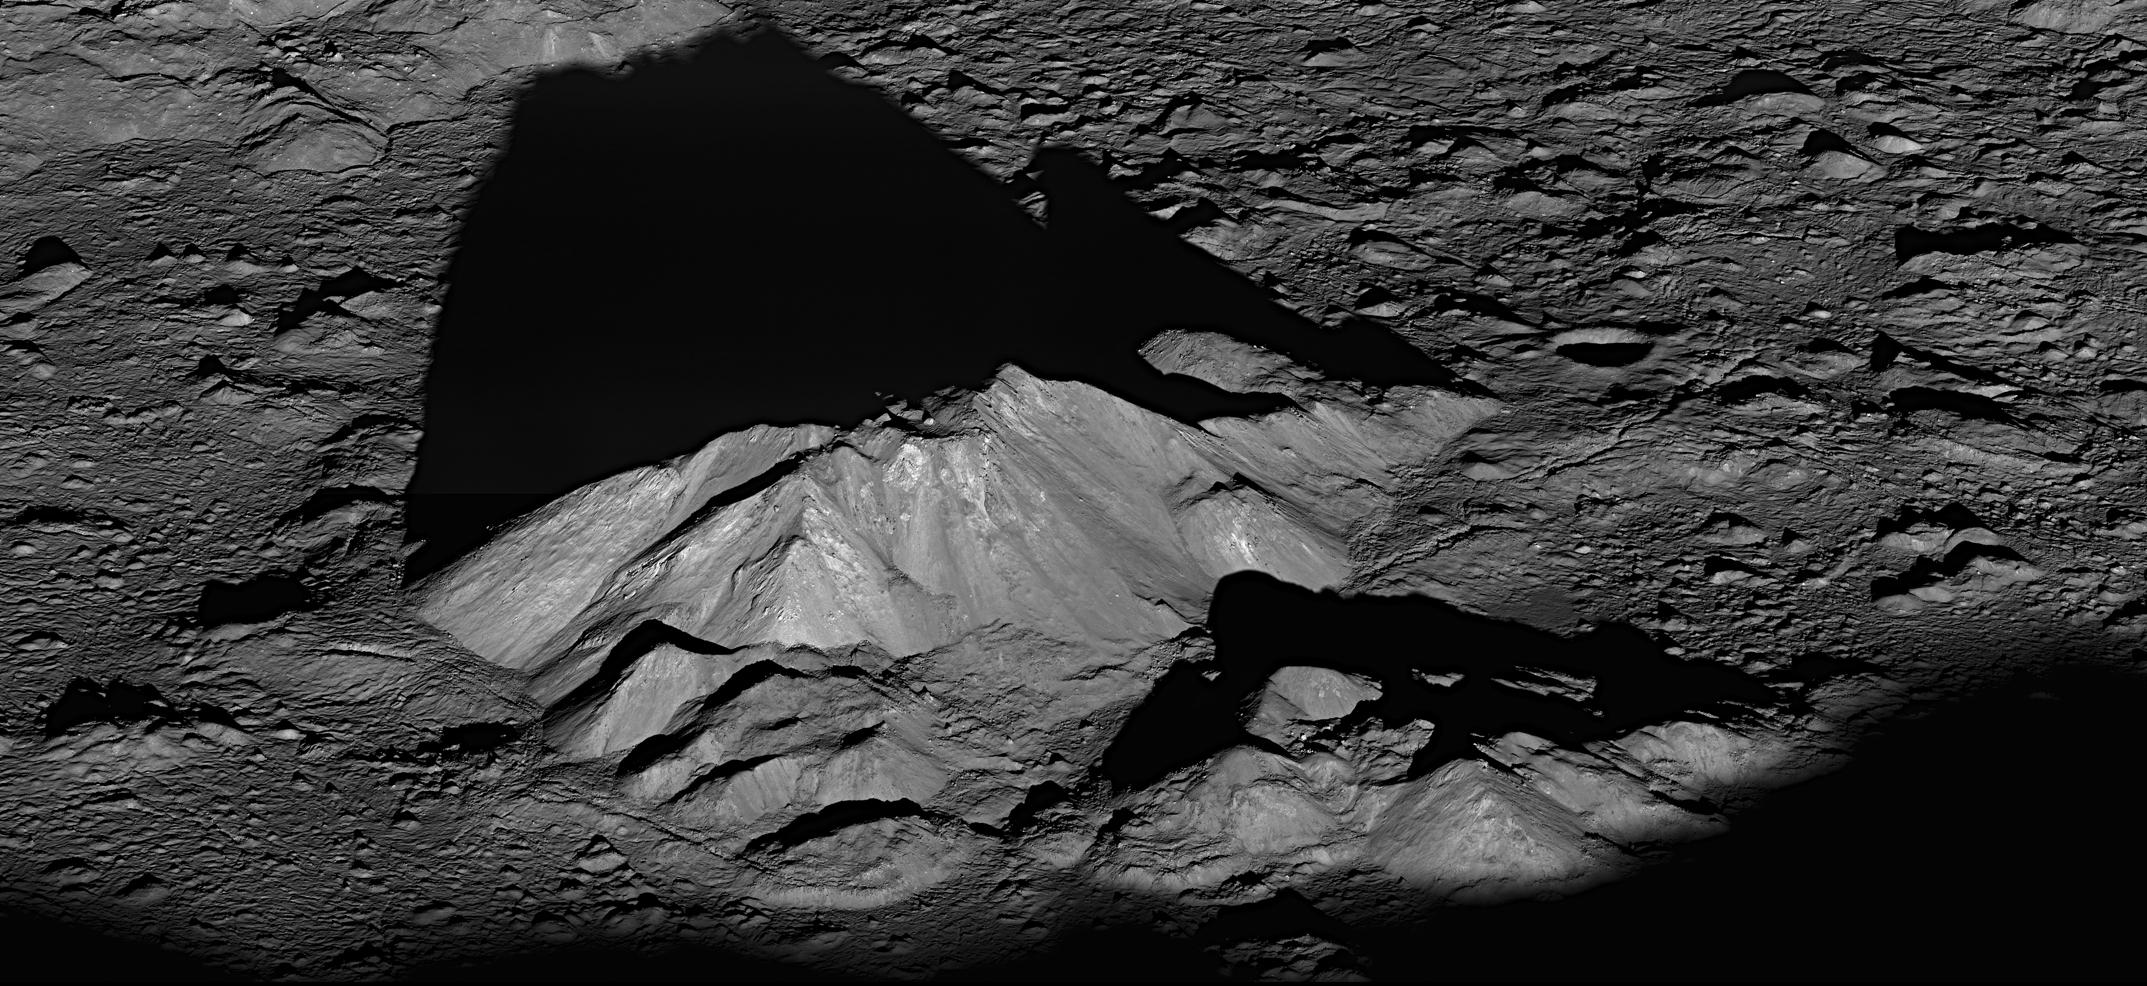 Lunar Reconnaissance Orbiter's View of Tycho Central Peak on the Earth's moon. Image credit: NASA.